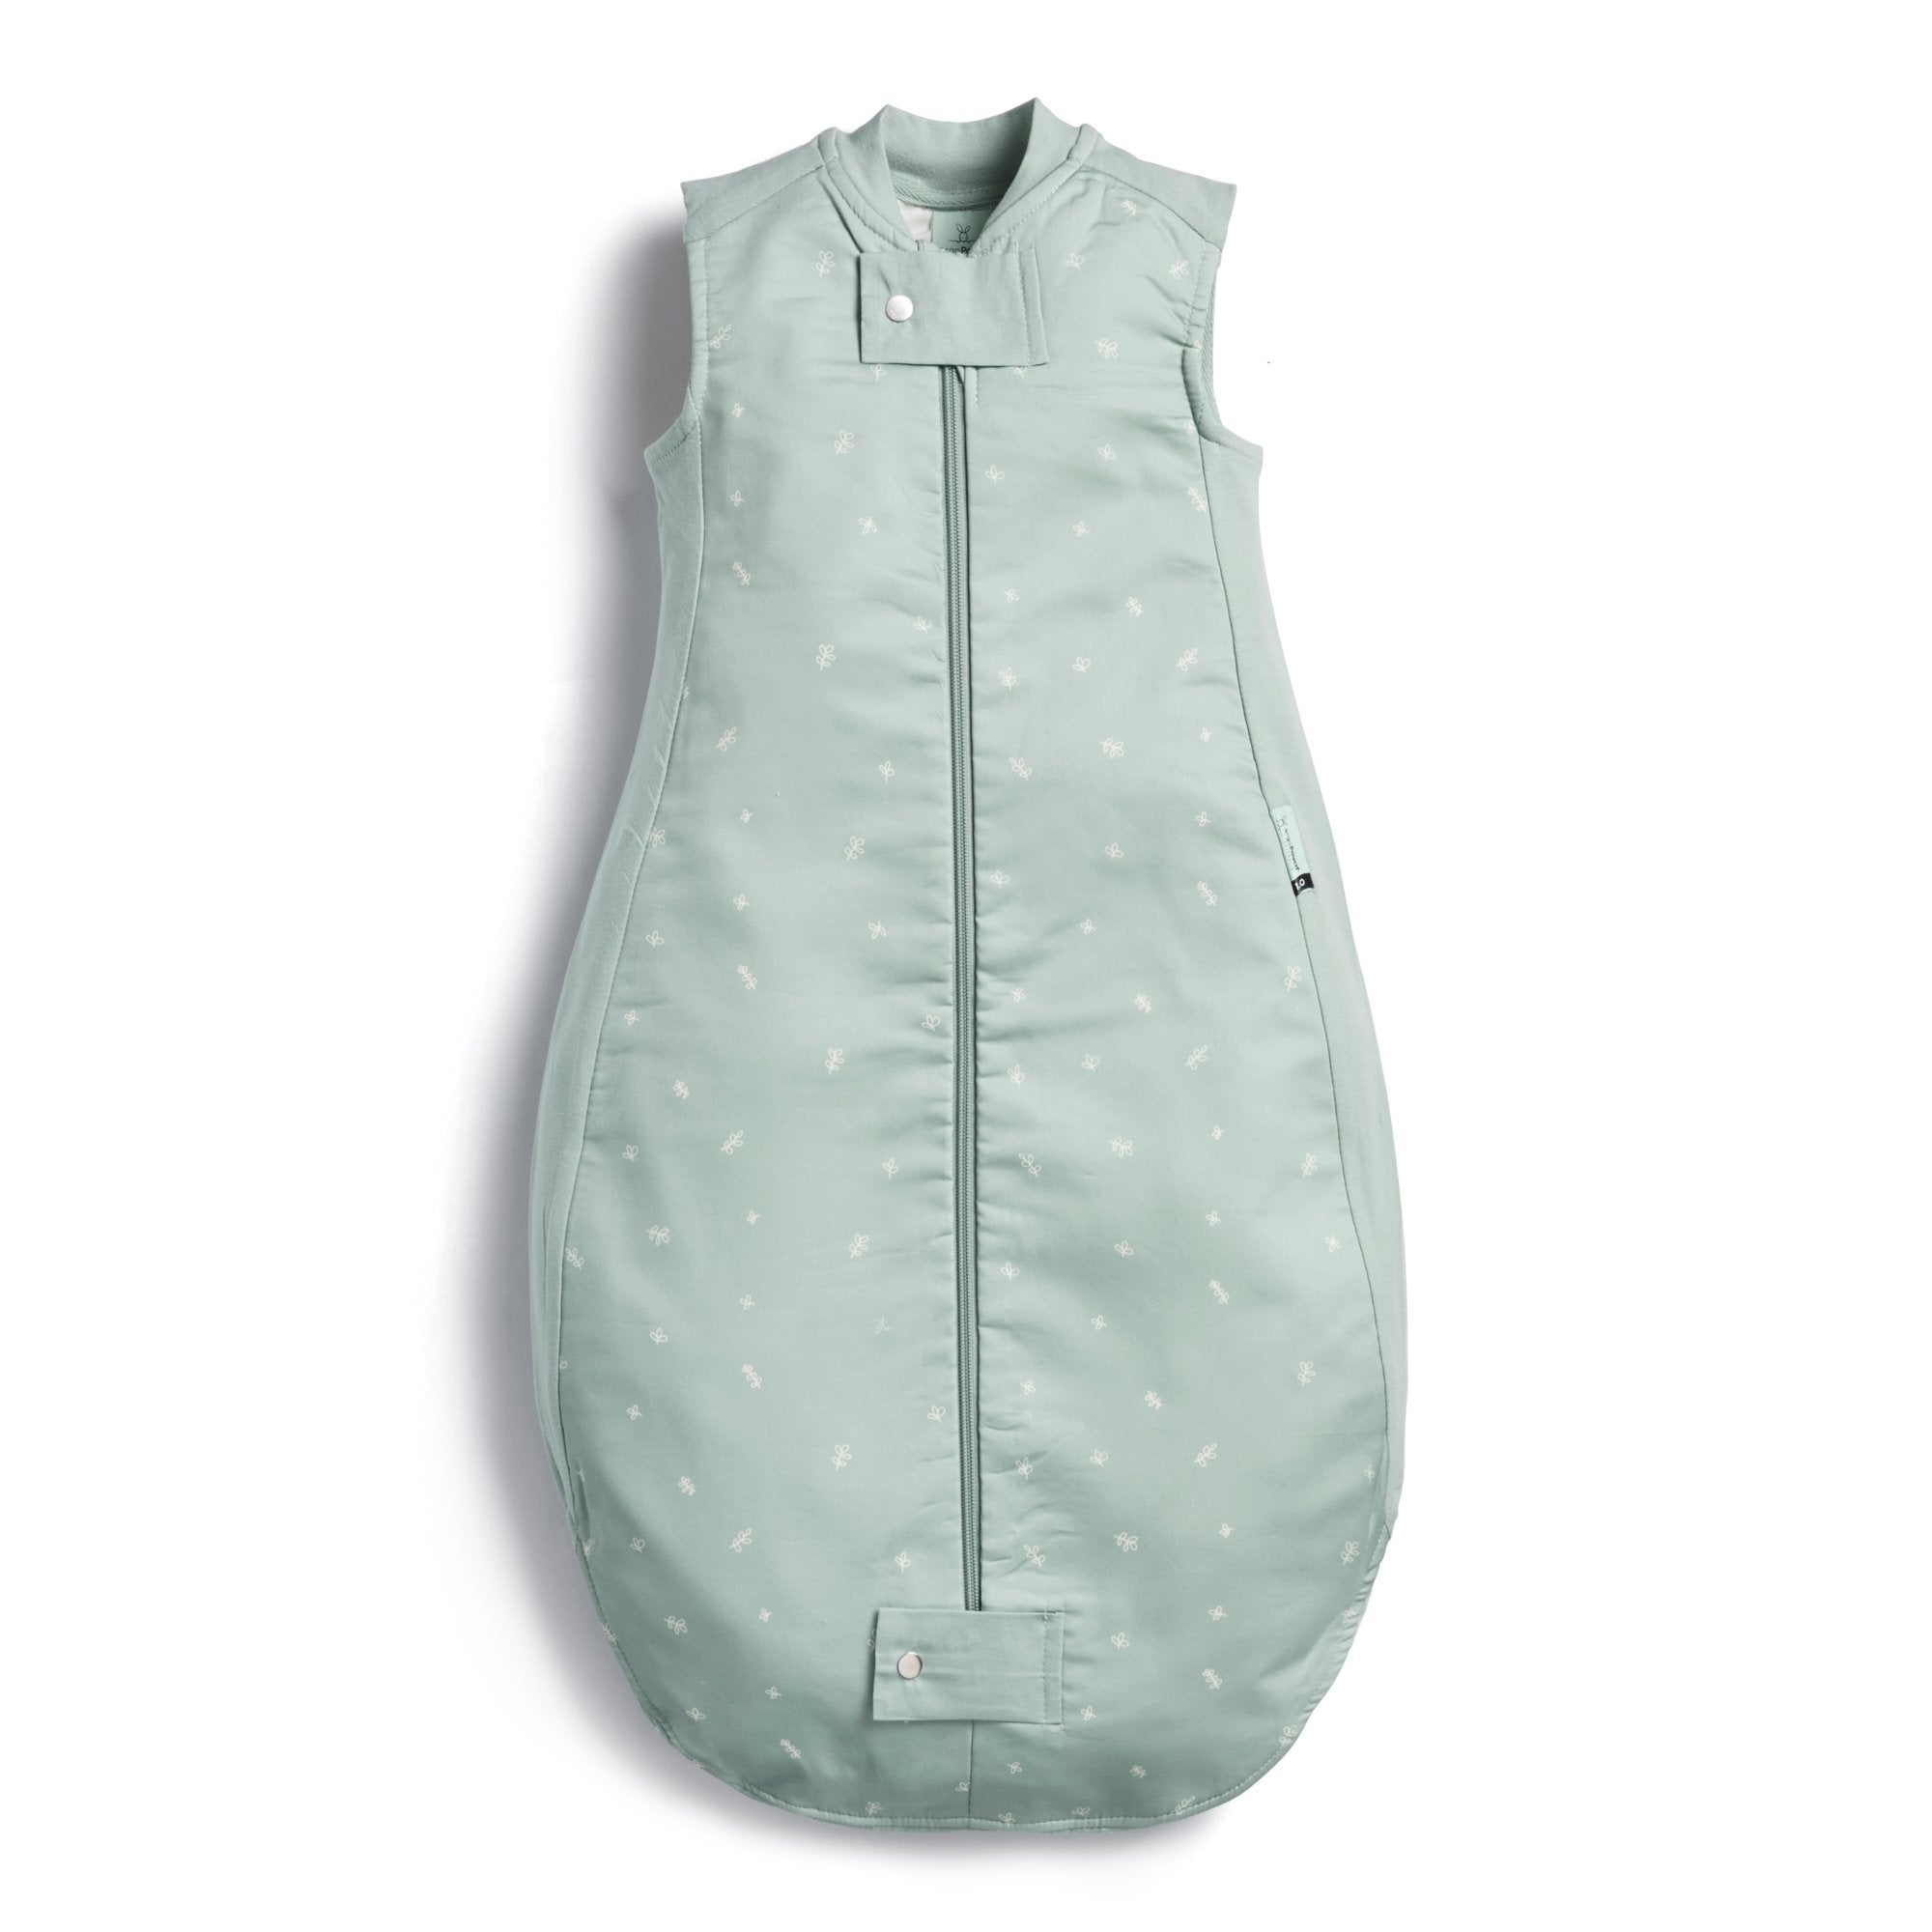 Sheeting Sleeping Bag 1.0 tog (Sage)